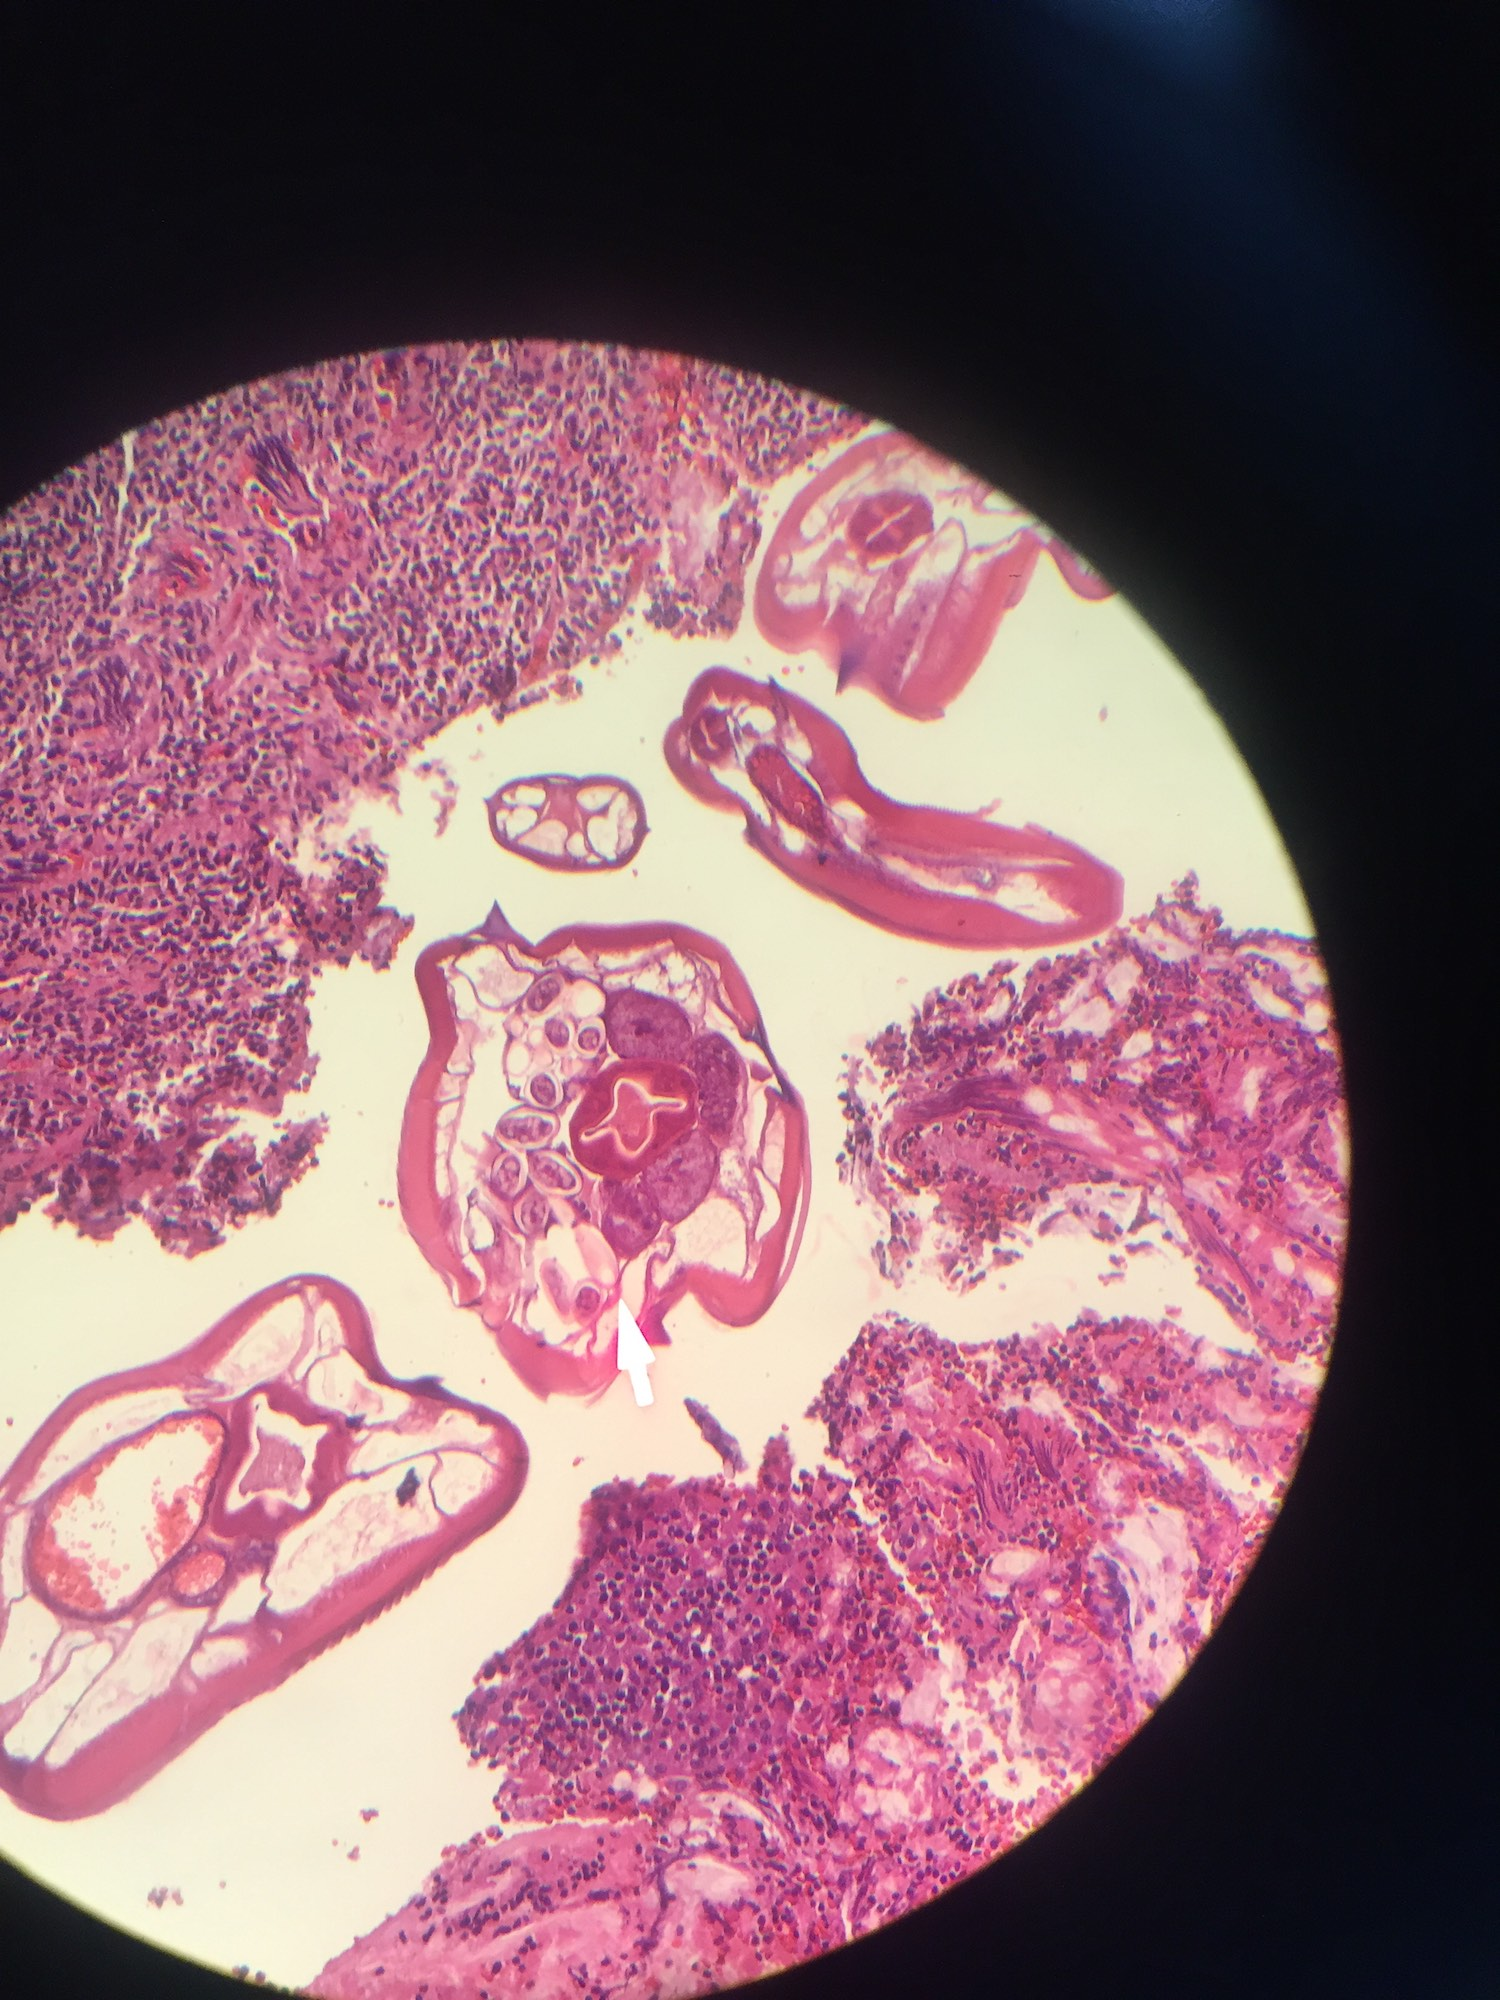 enterobius vermicularis pathology)